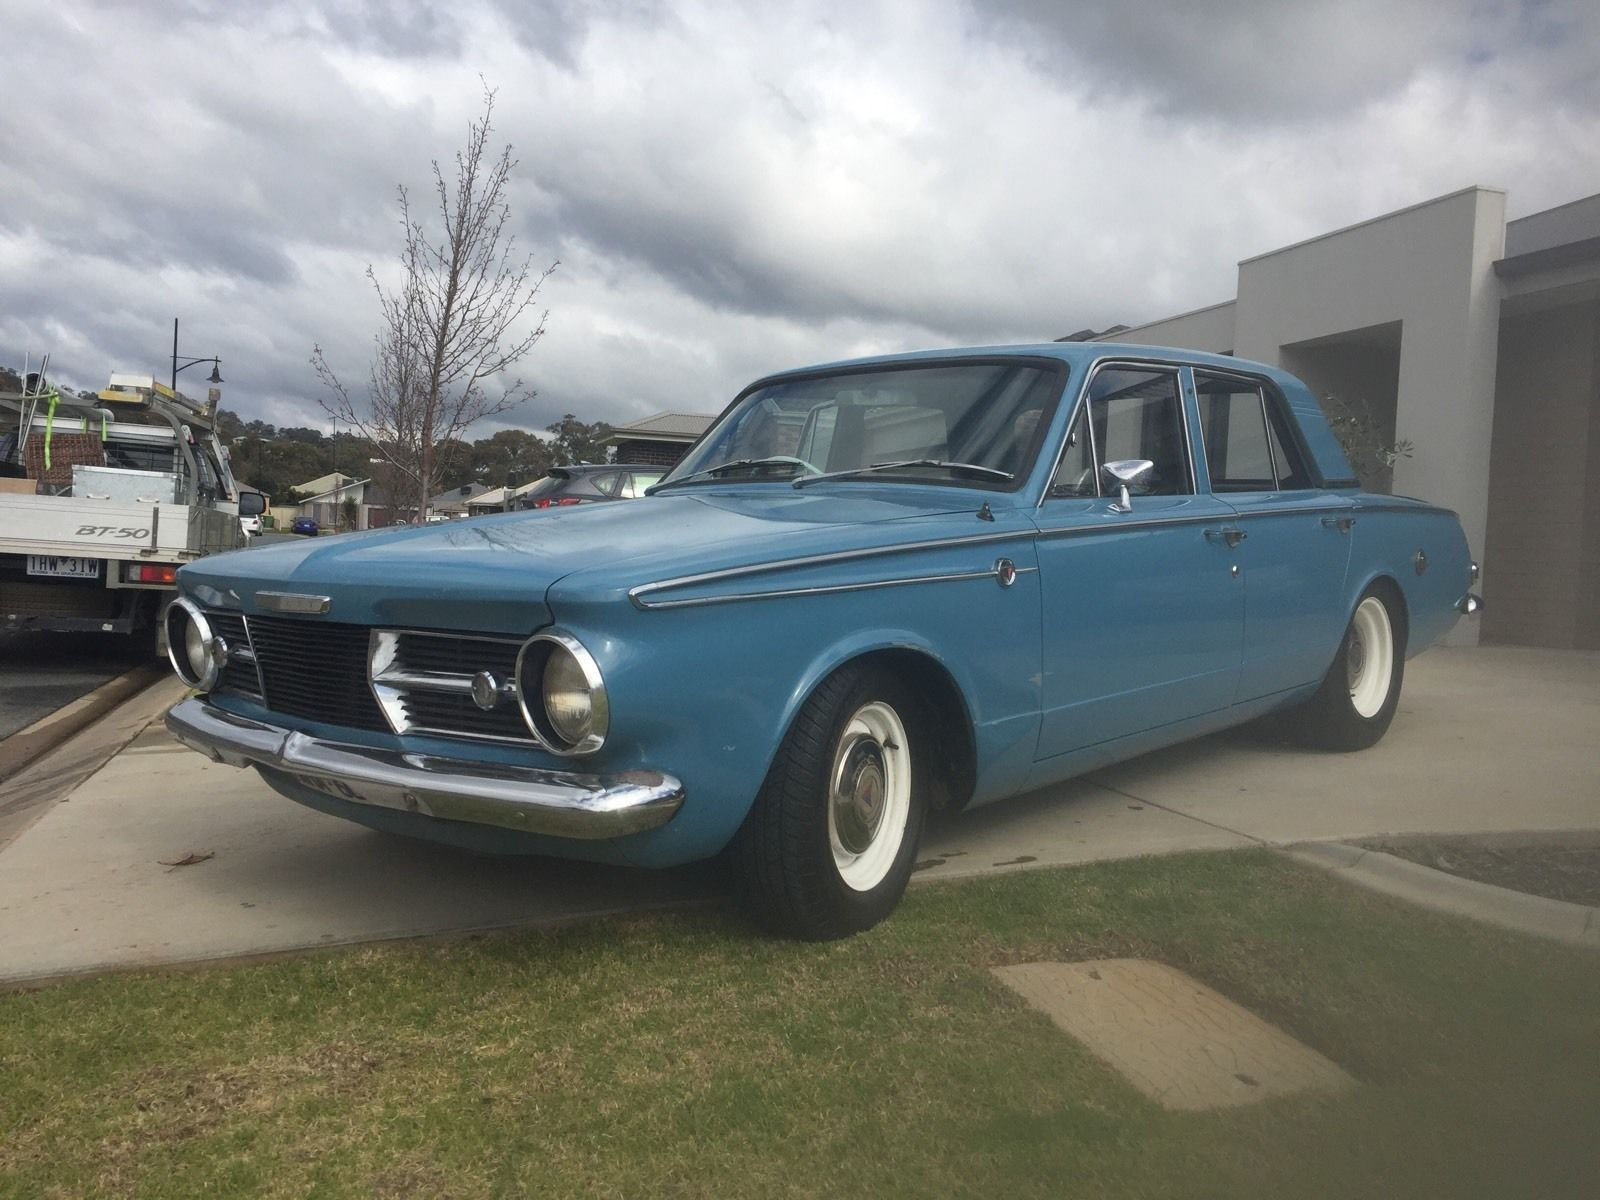 Chrysler Valiant Ap6 V8 in Cars, Bikes, Boats, Cars, Collector Cars ...